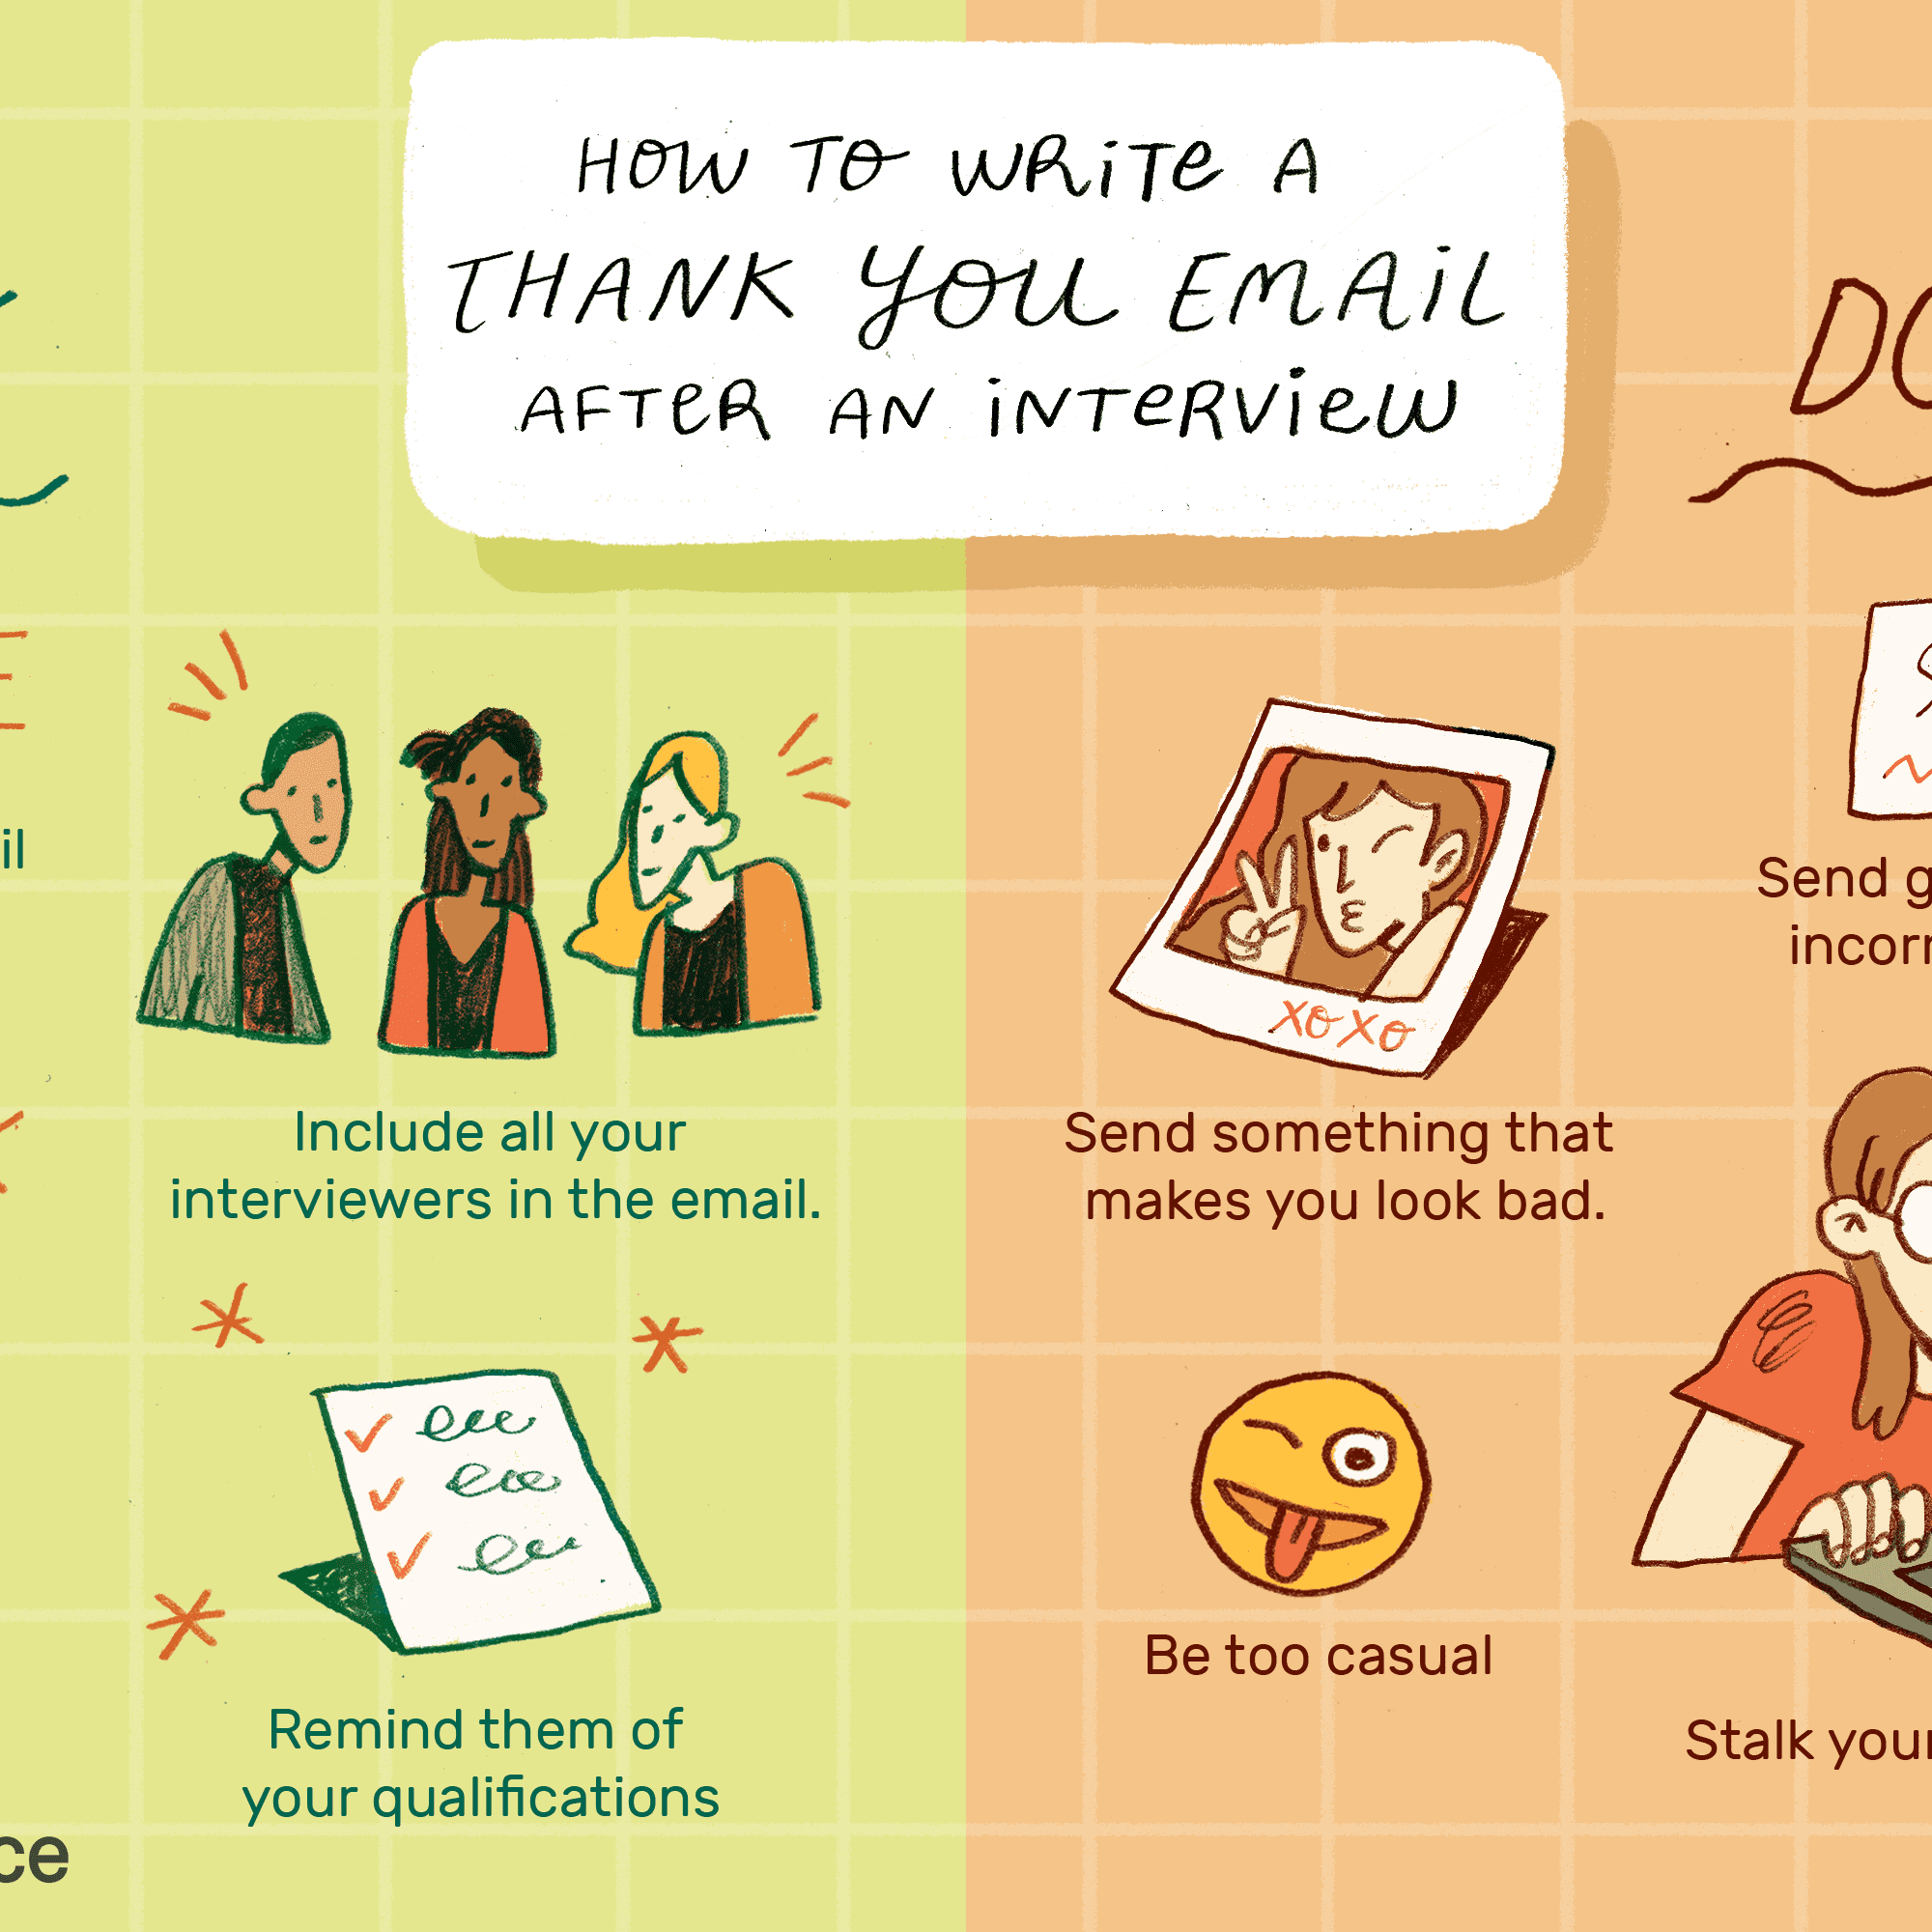 Thank You Email After Interview - Examples, Do's and Dont's